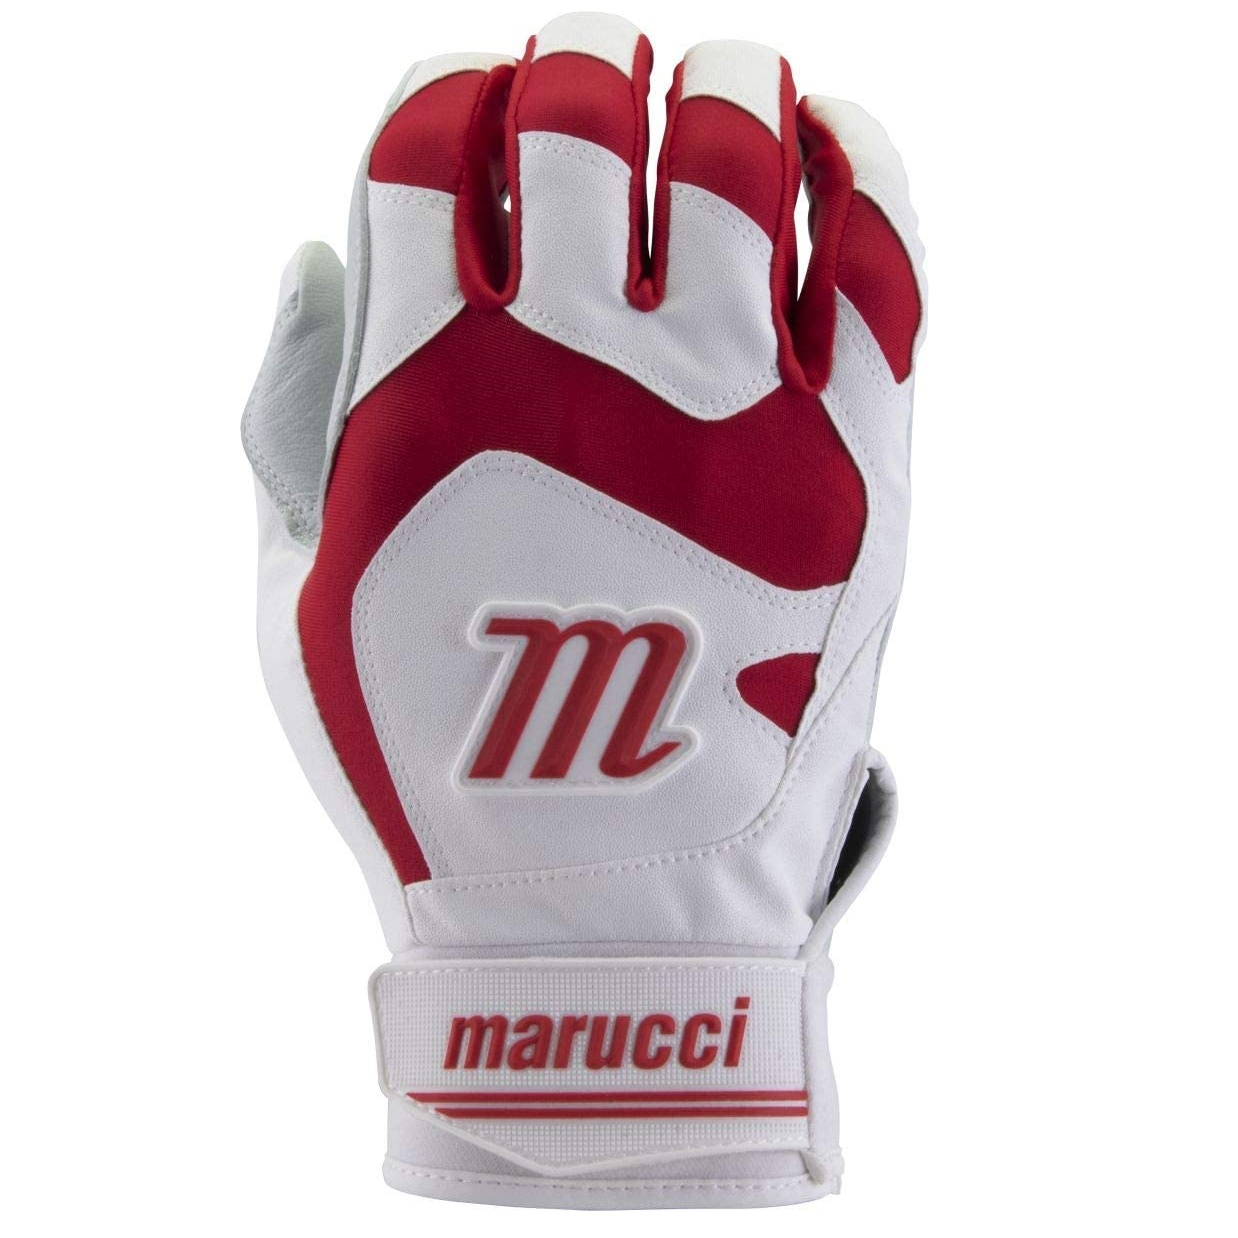 marucci-signature-youth-batting-gloves-red-youth-large MBGSGN2Y-RW-YL Marucci  Digitally embossed perforated Cabretta sheepskin palm provides maximum grip and durability